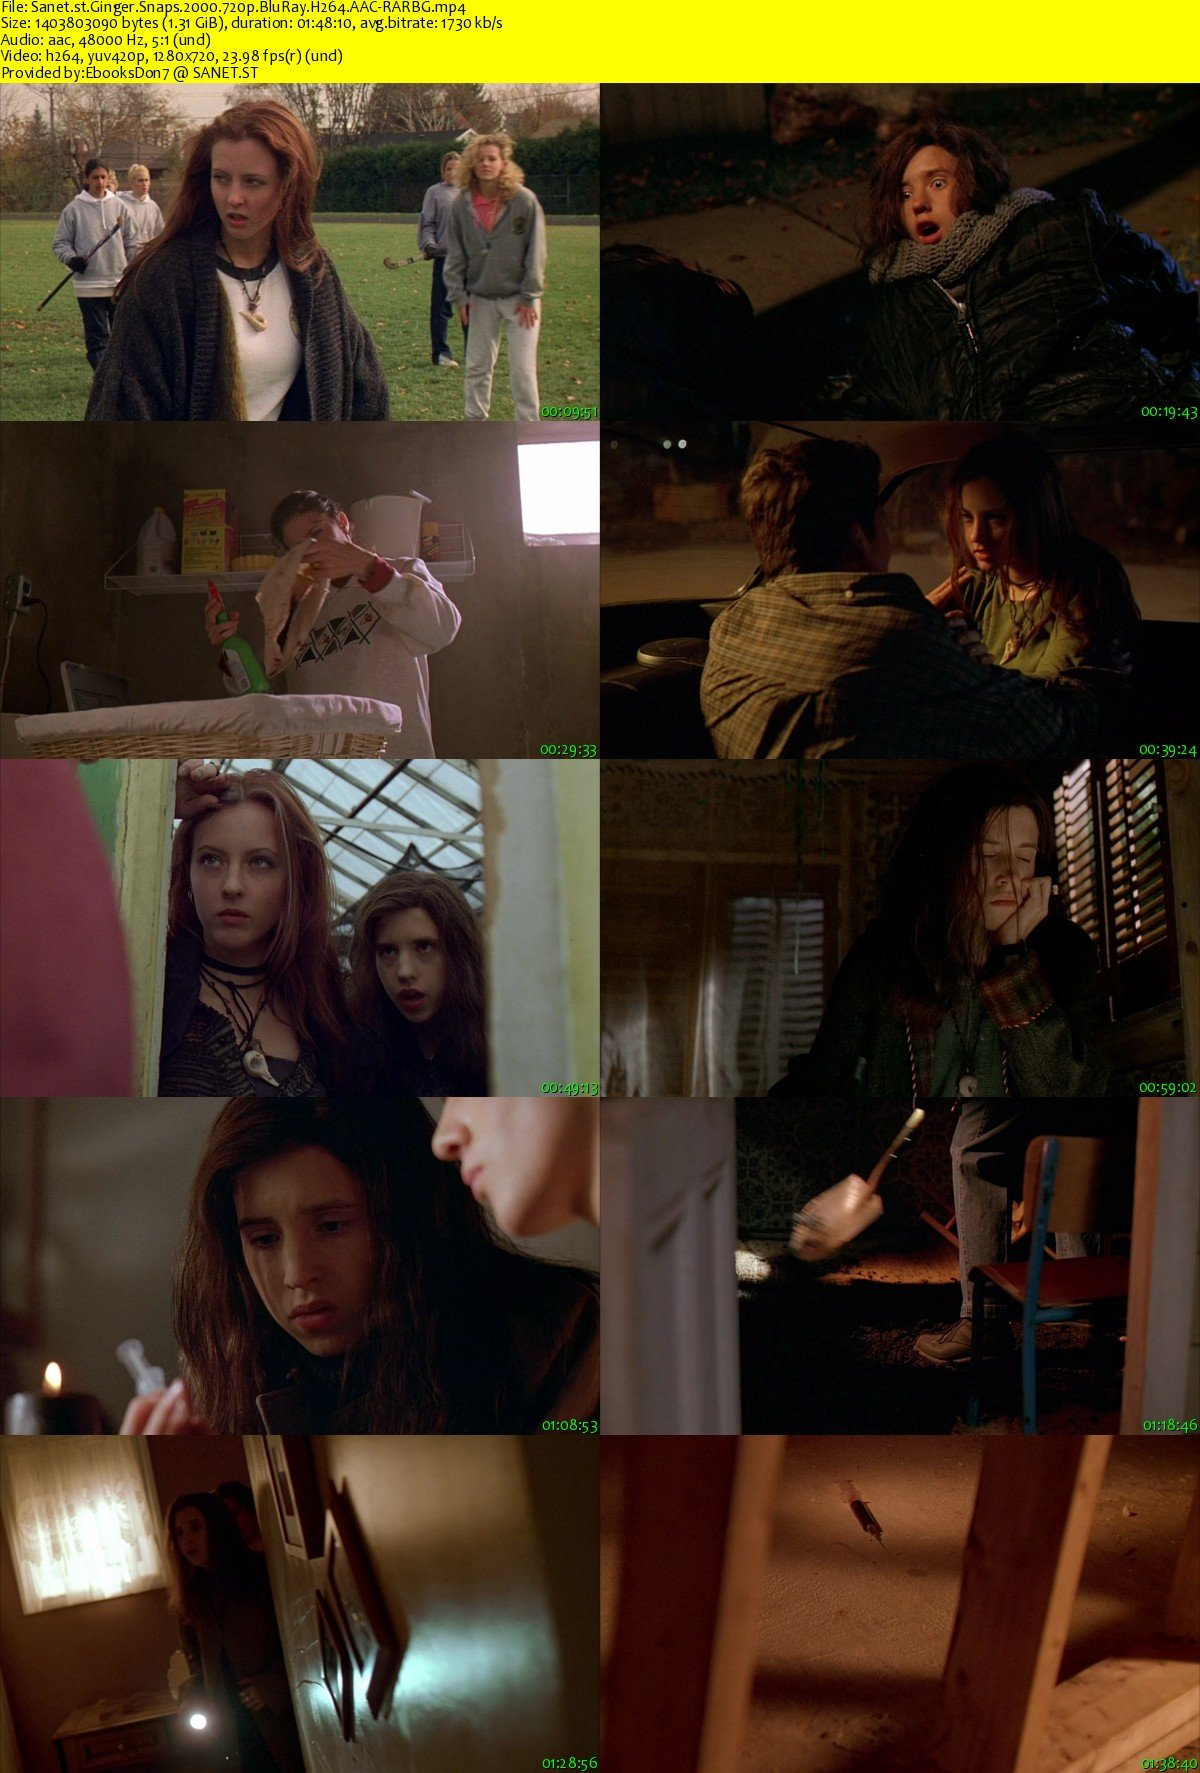 Ginger Snaps Posters